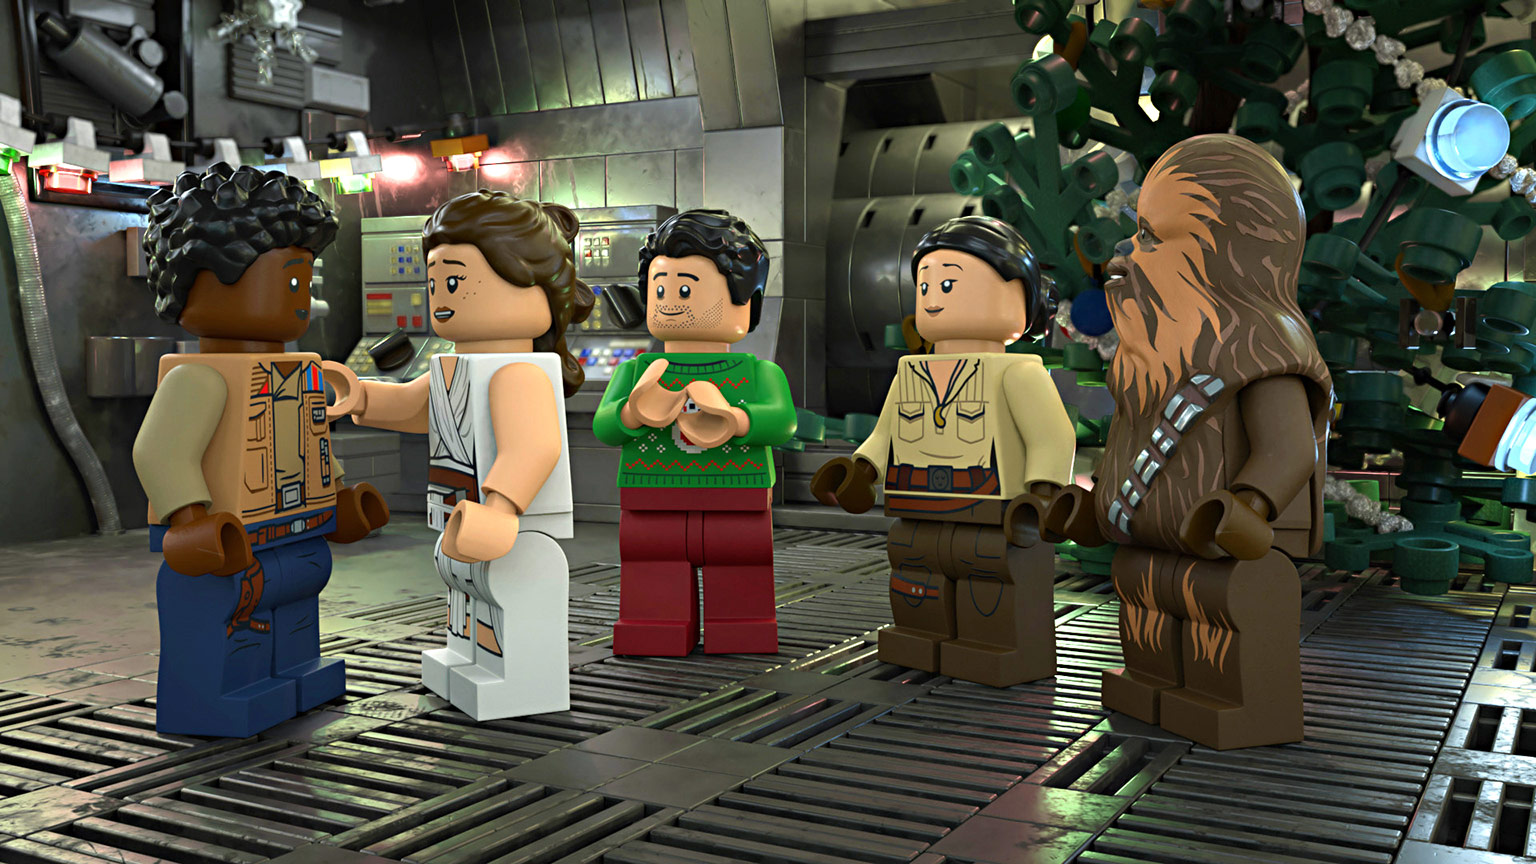 Scene for The LEGO Star Wars holiday Special